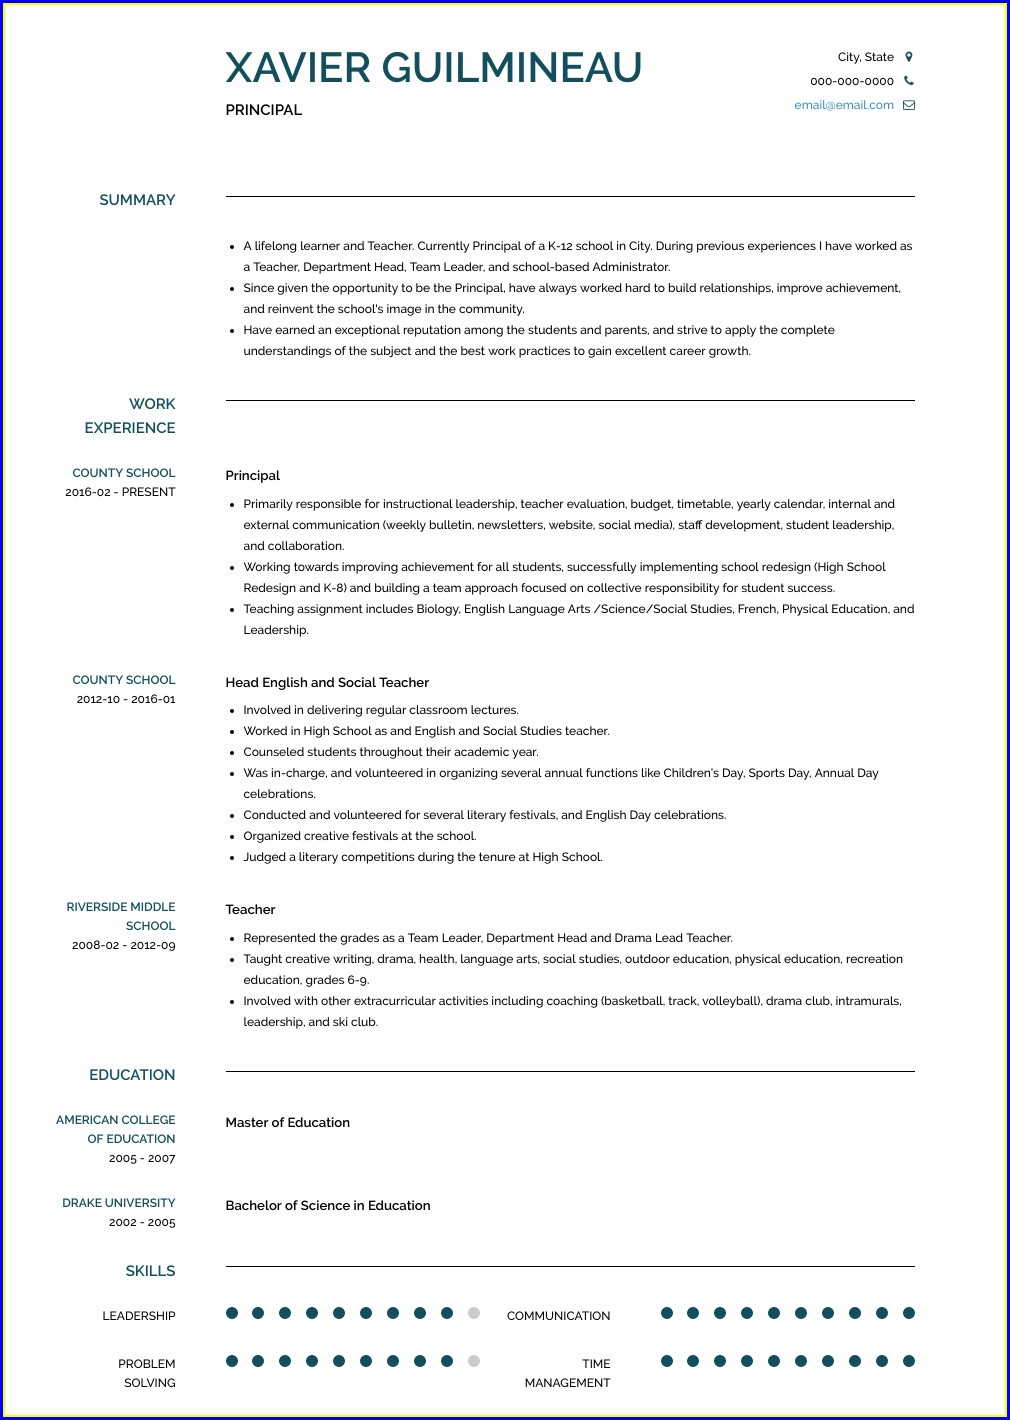 Examples Of Principal Resumes Templates